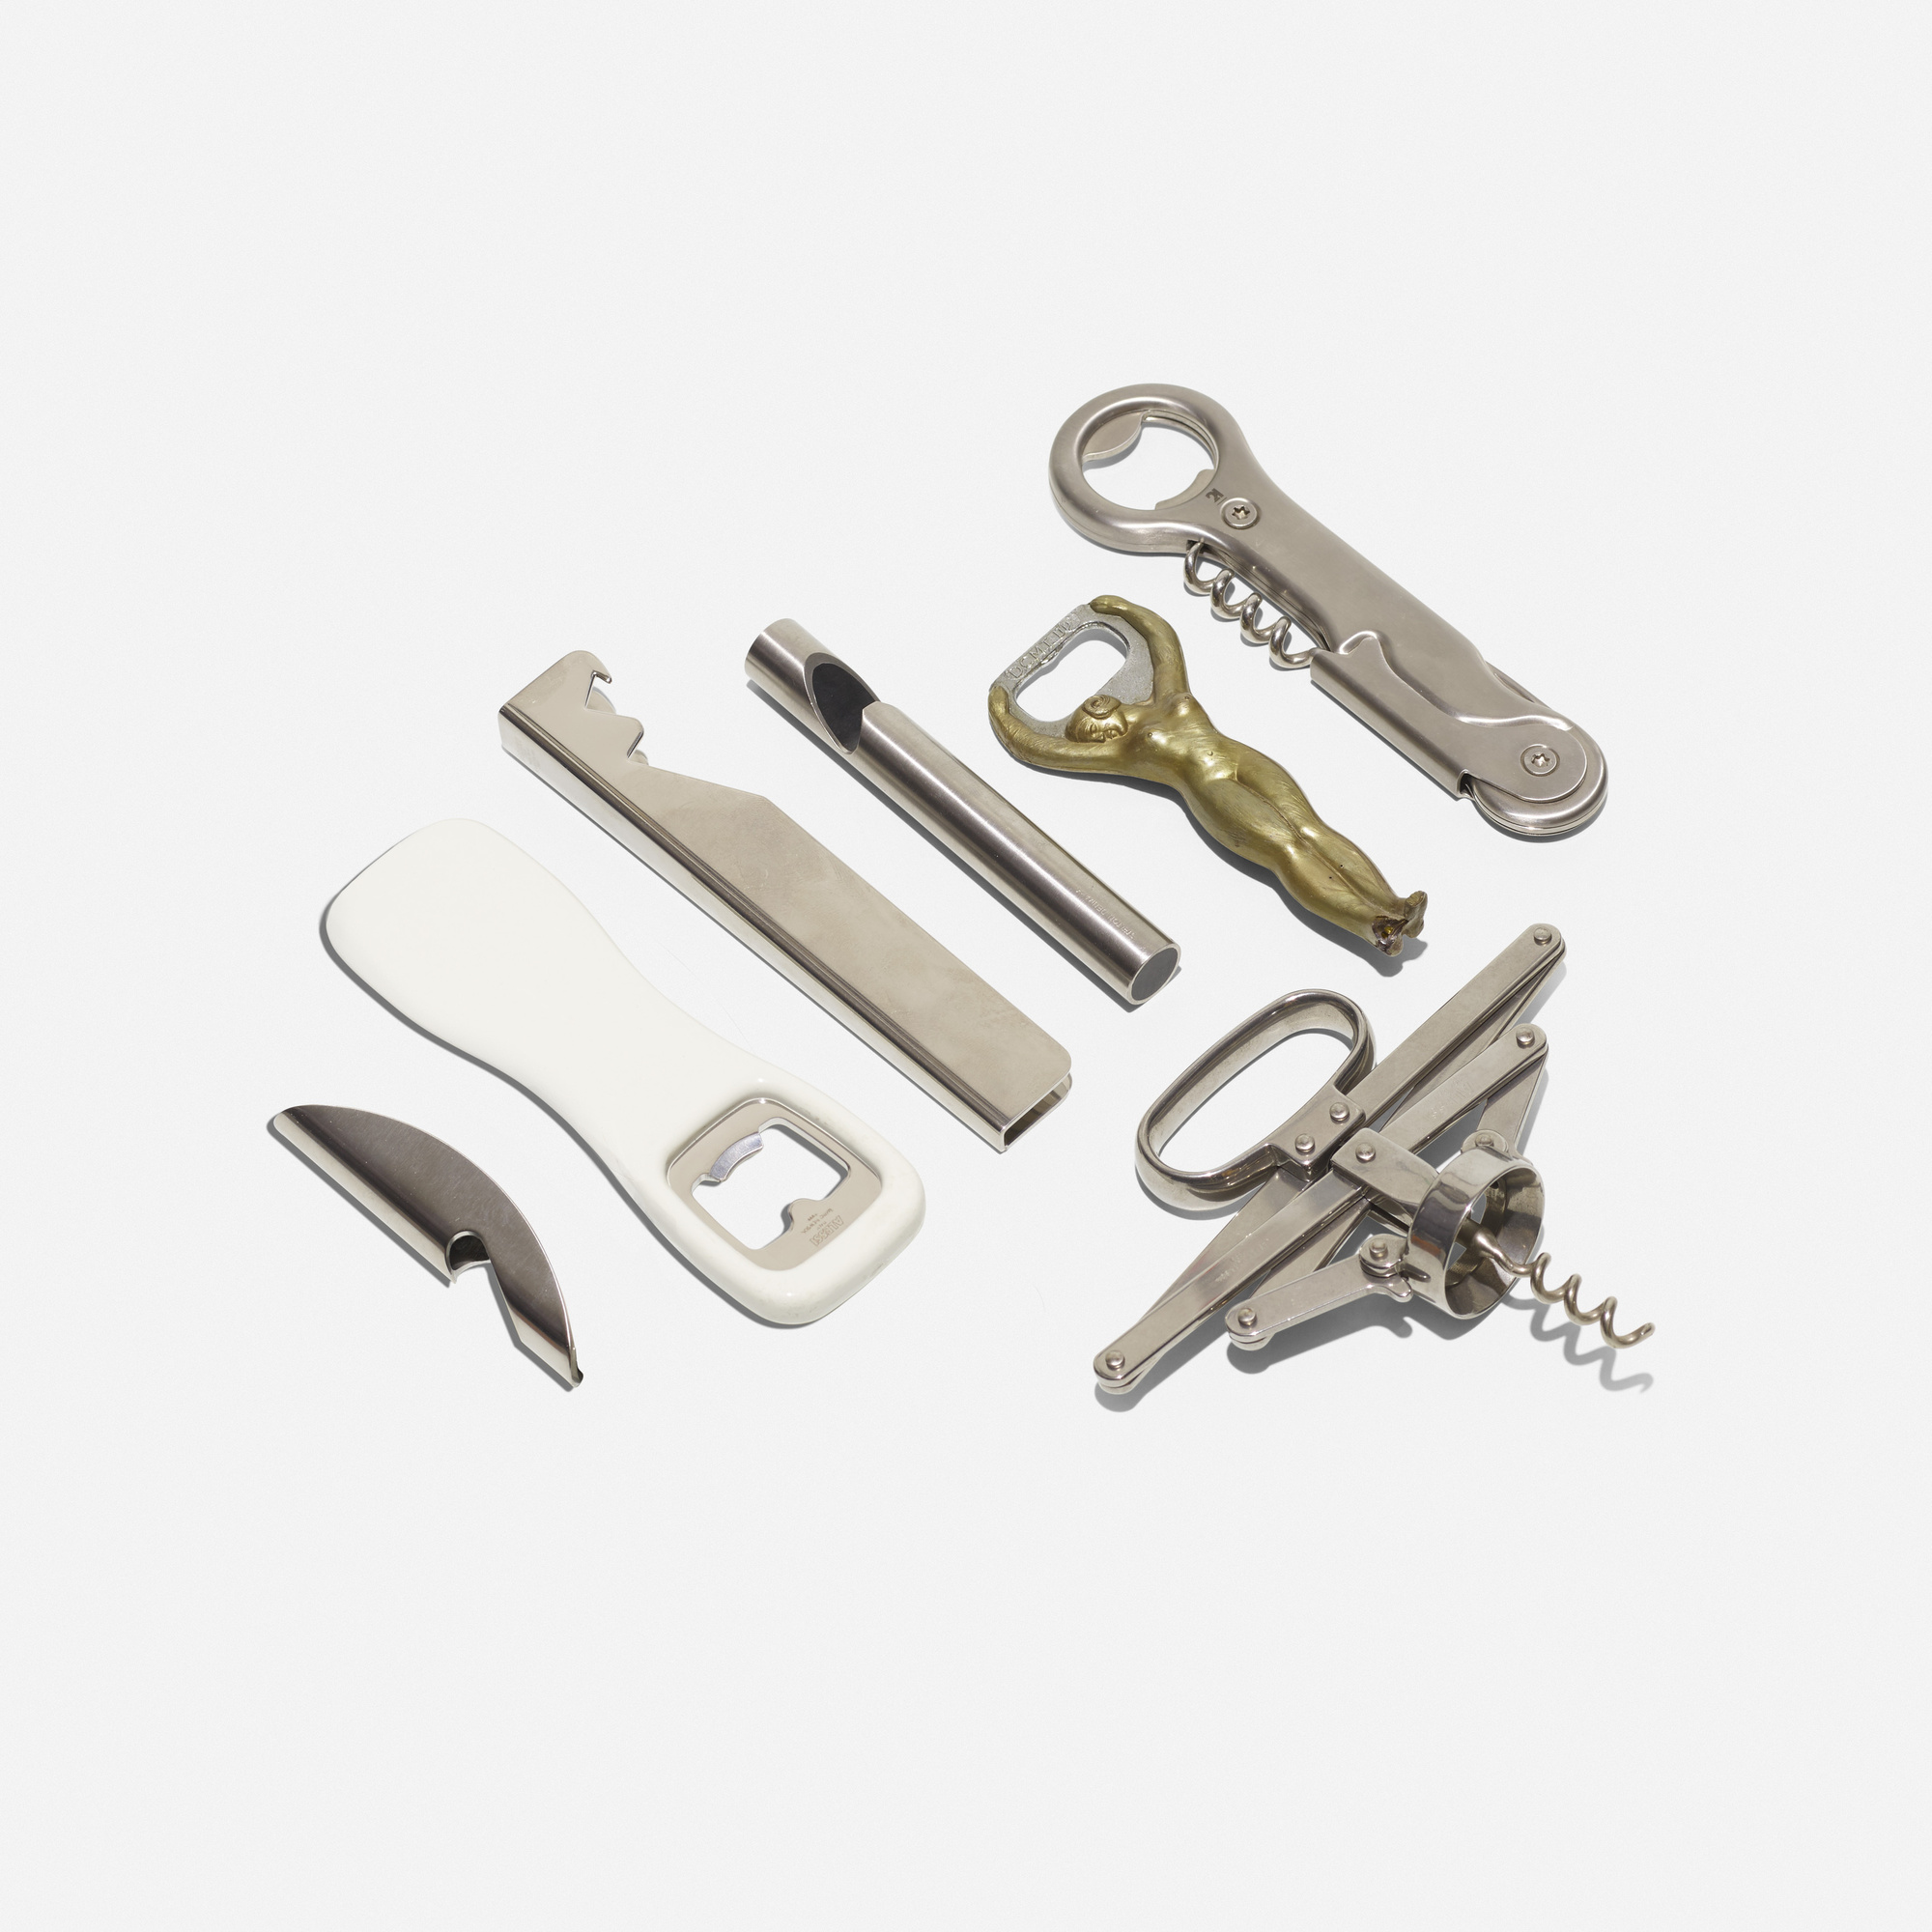 464: Various Artists / collection of seven bottle openers (1 of 1)